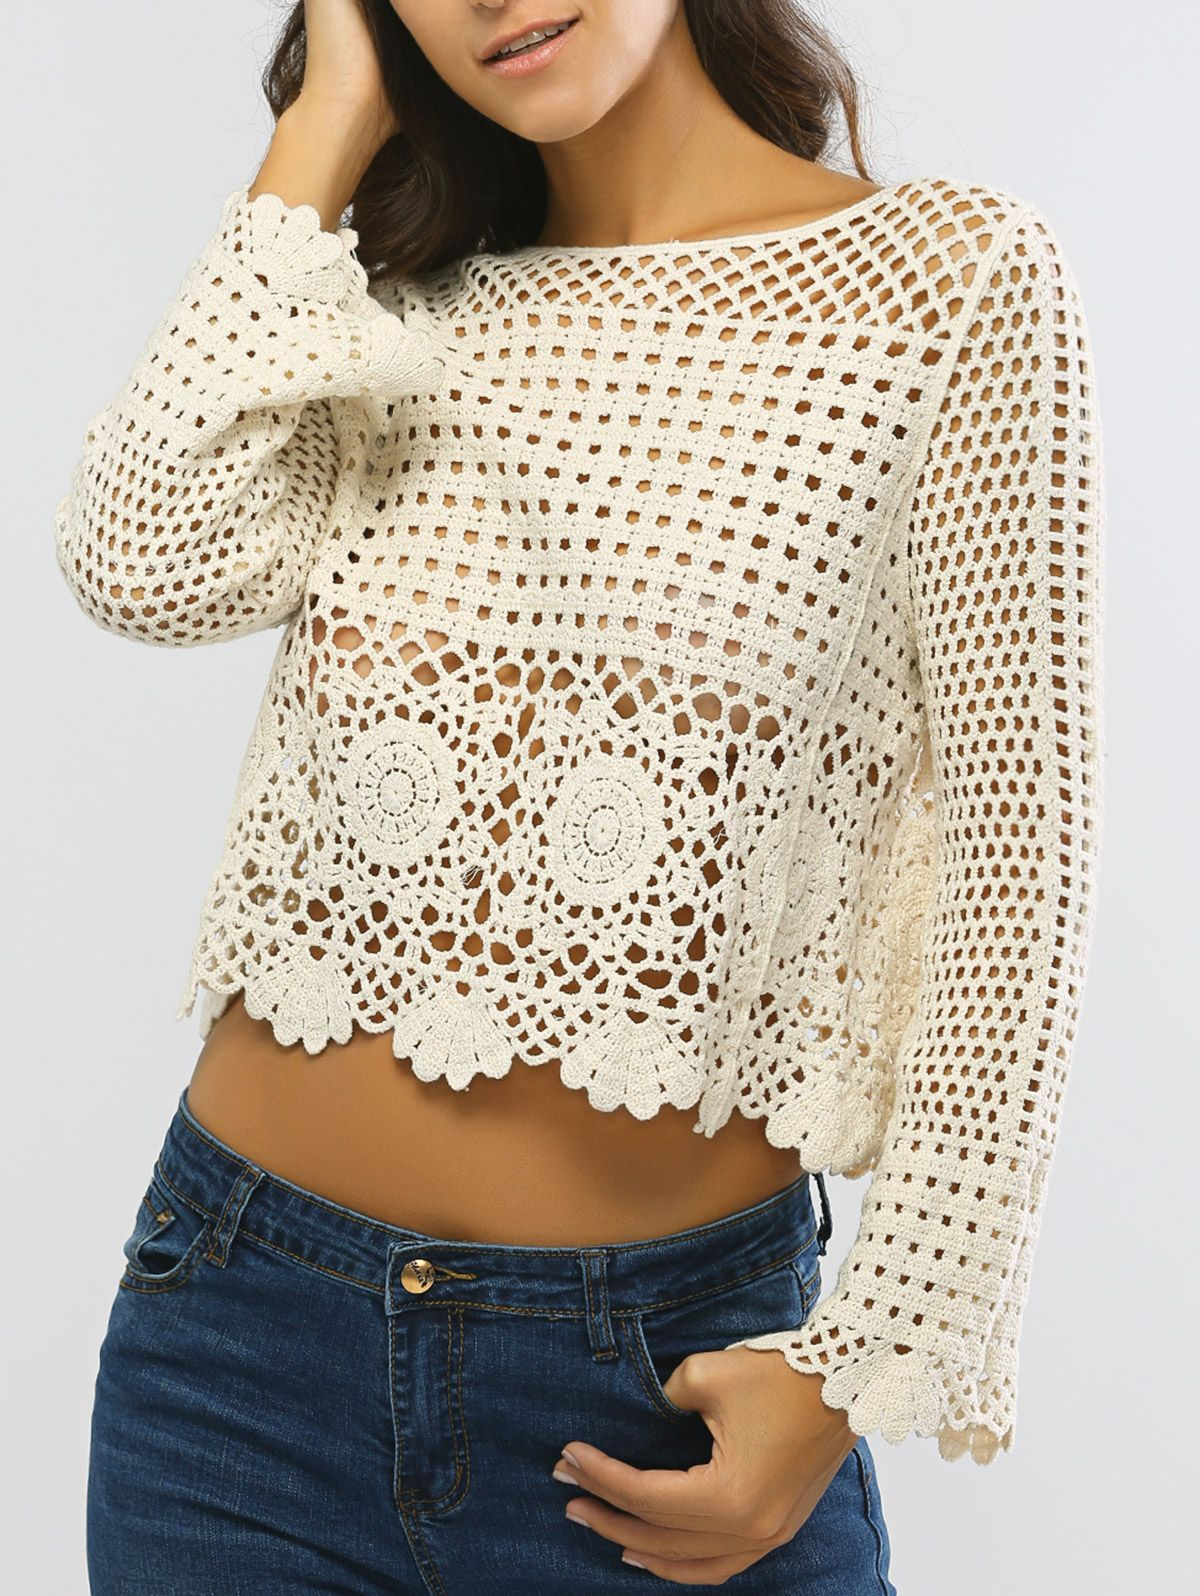 Laciness Hollow Out Cropped Knitted Top Ganchillo Crochet Blouse